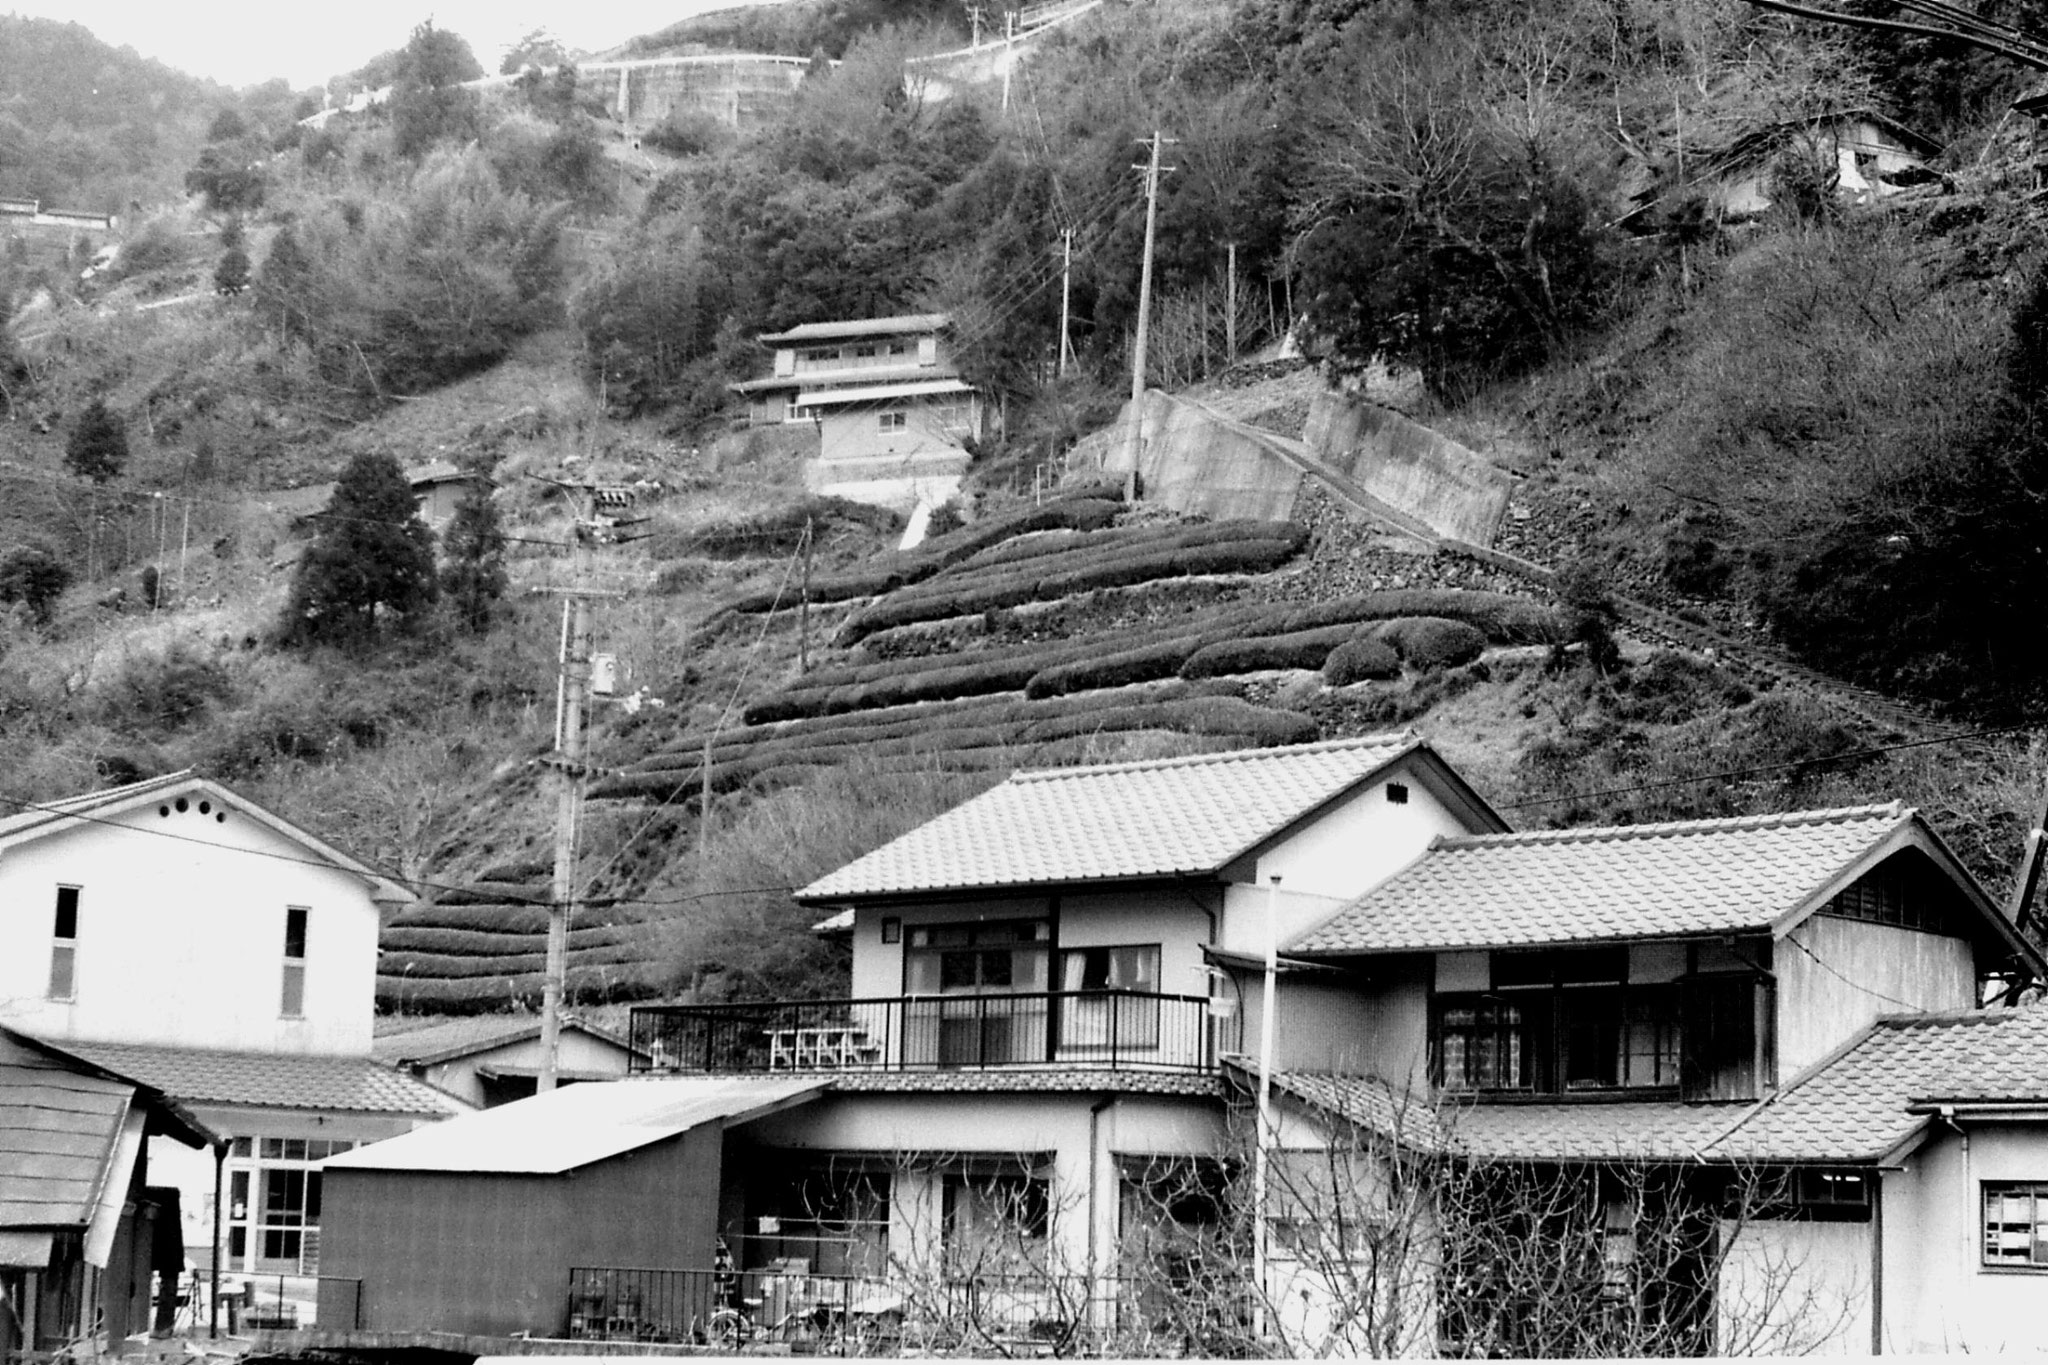 24/1/1989: 20:Yoshina Gorge